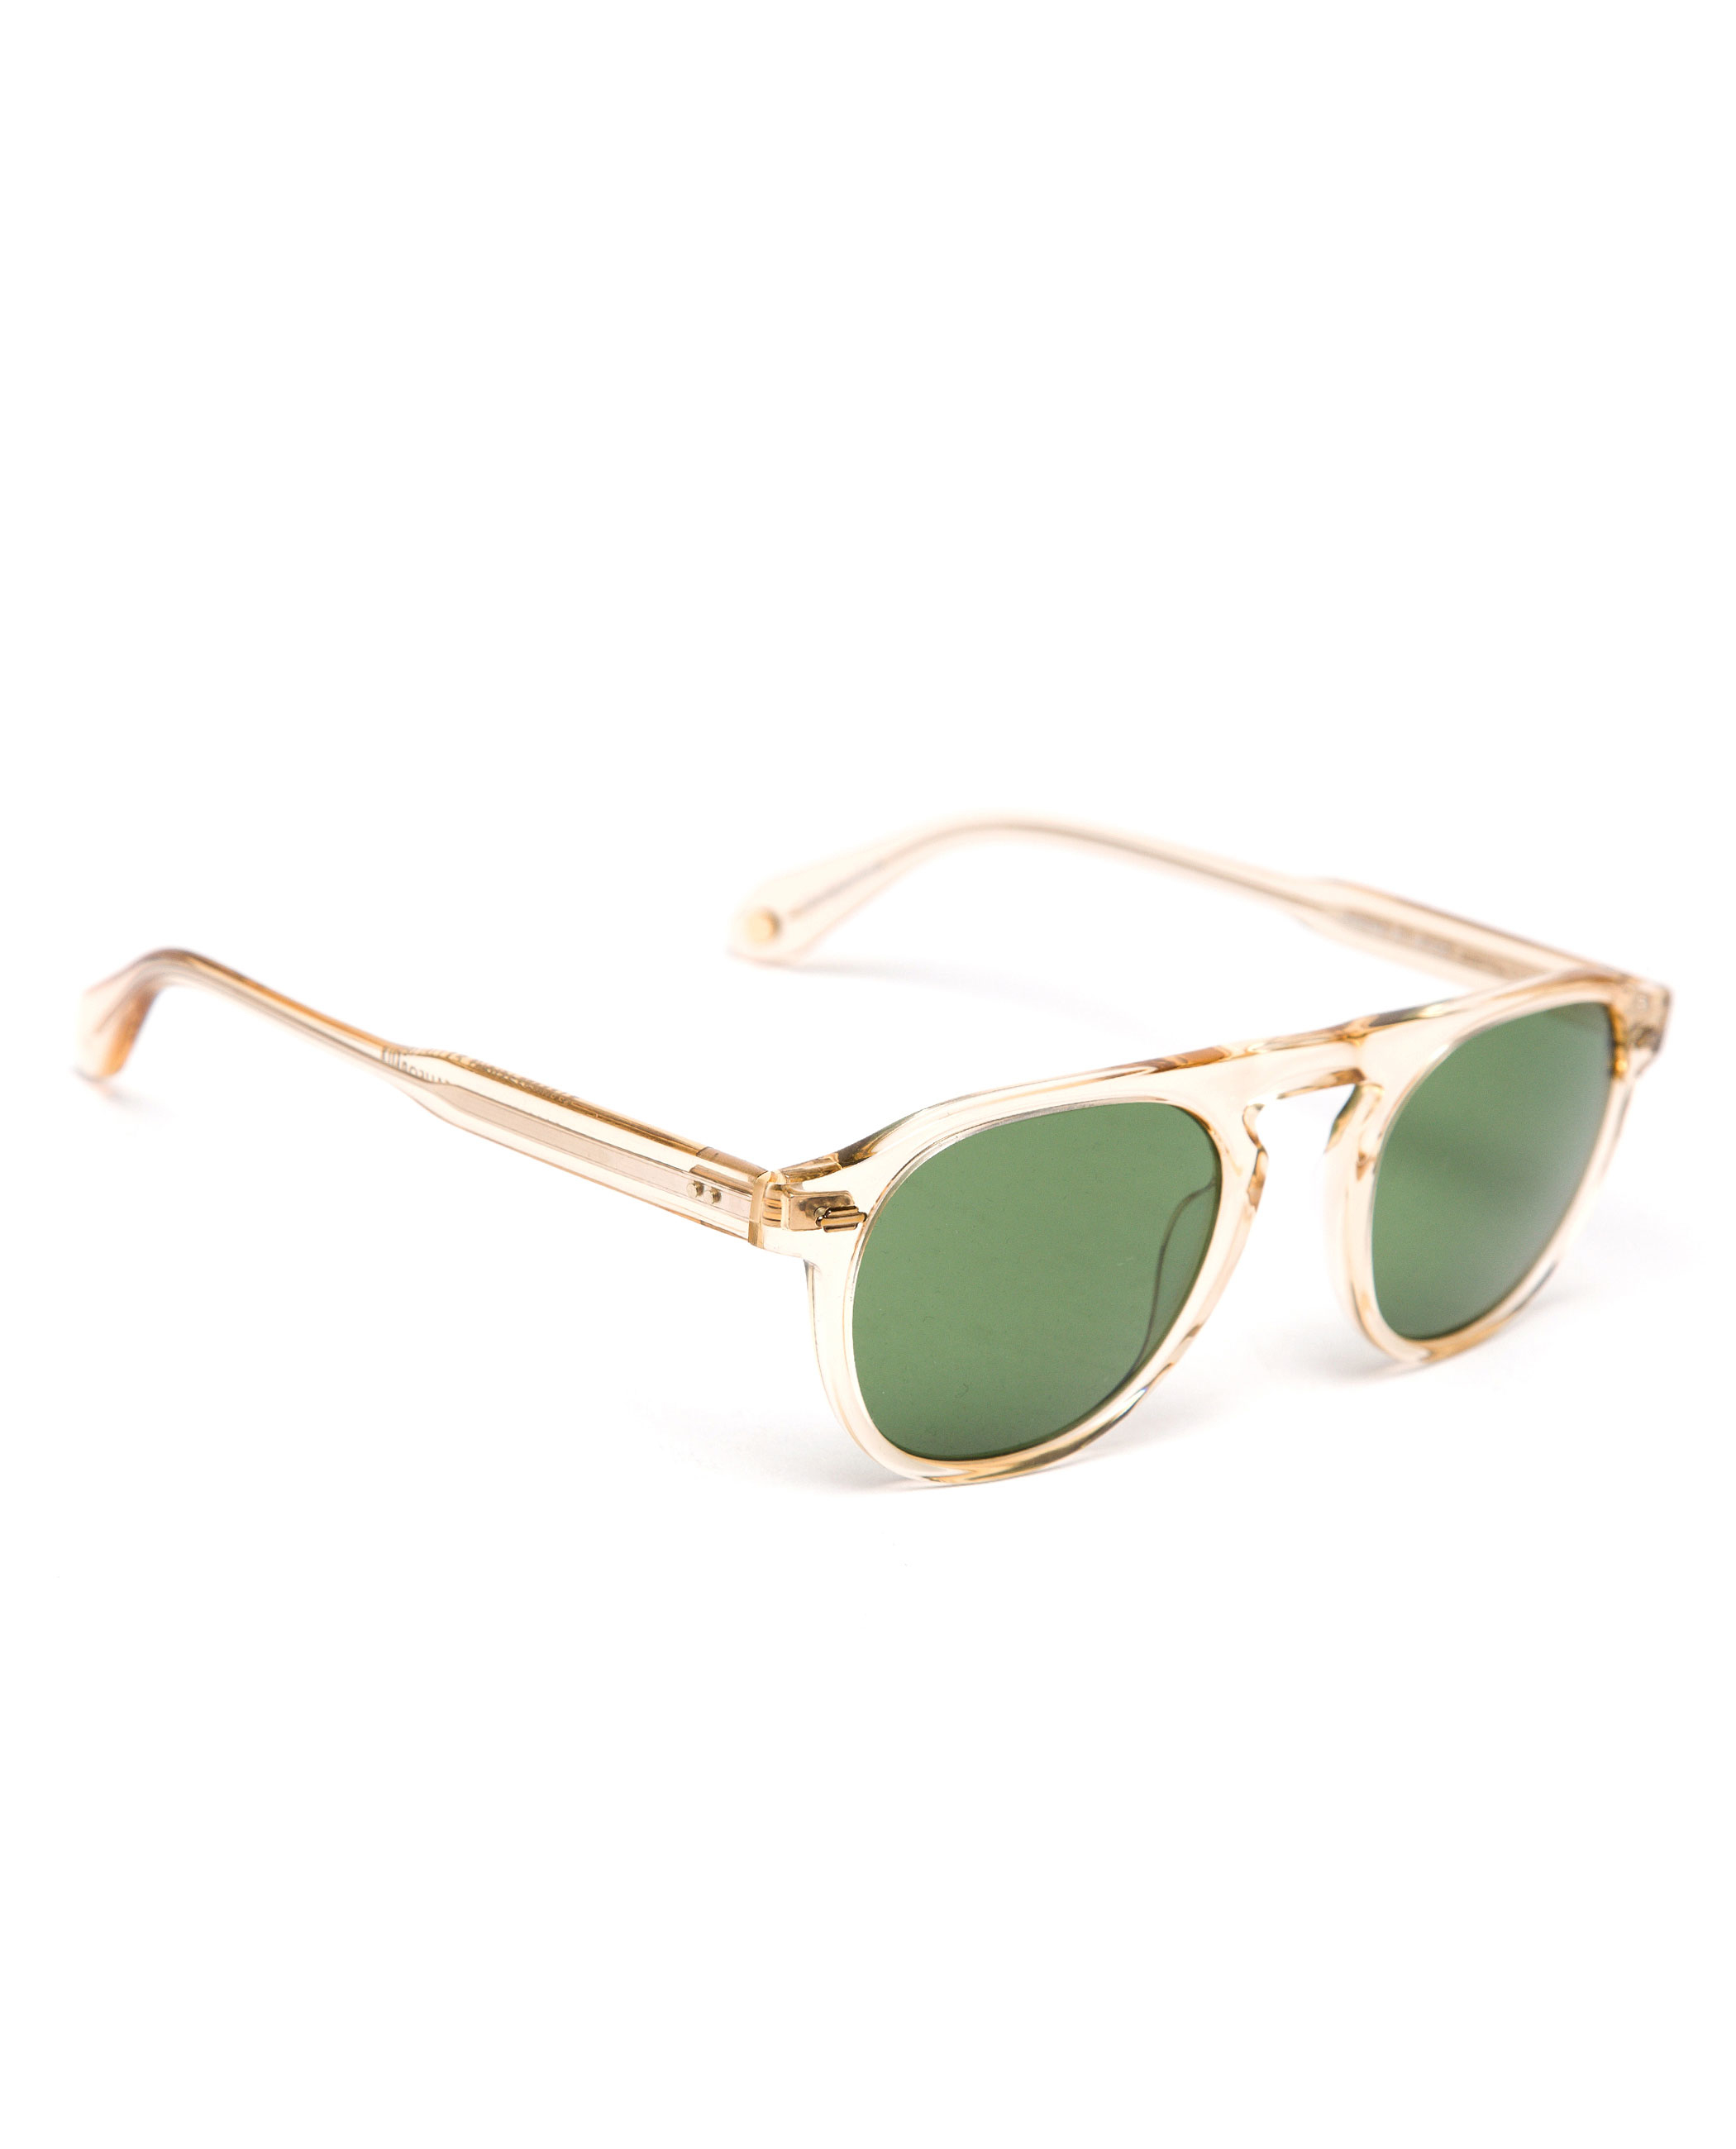 Lyst - Garrett Leight Transparent Frame Harding Sunglasses in ...